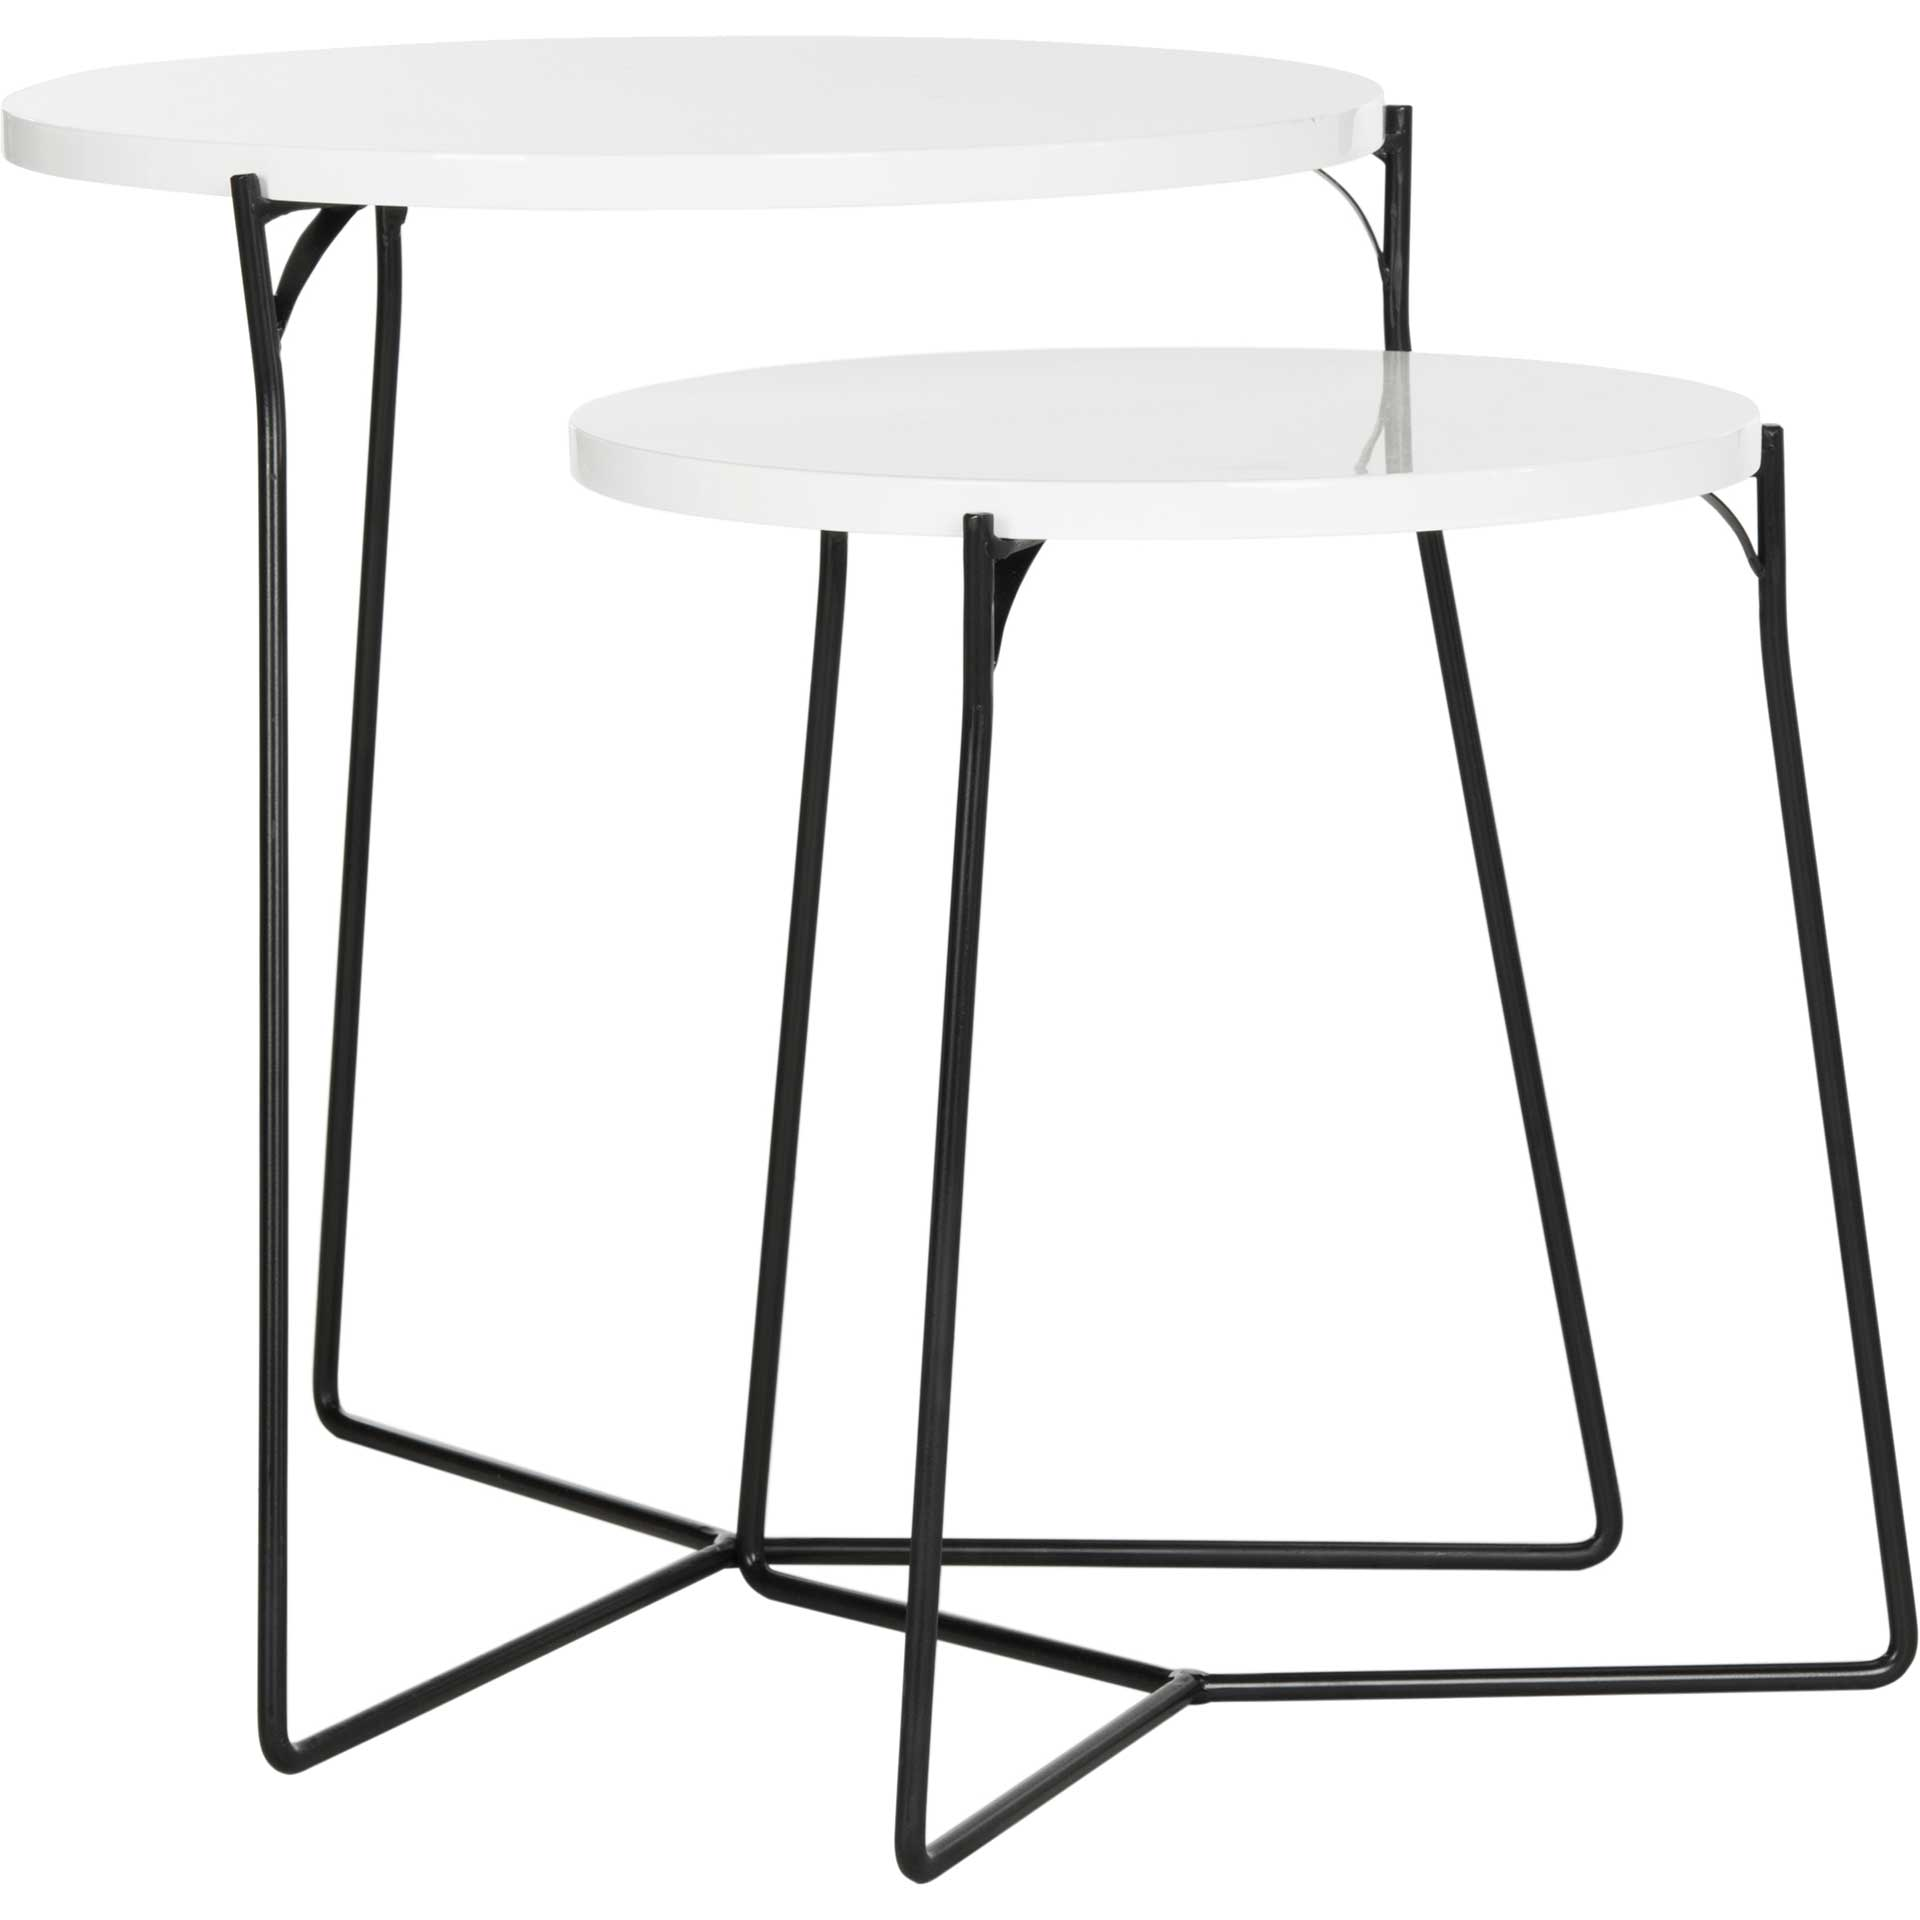 Rylan Lacquer Stacking End Table White/Black